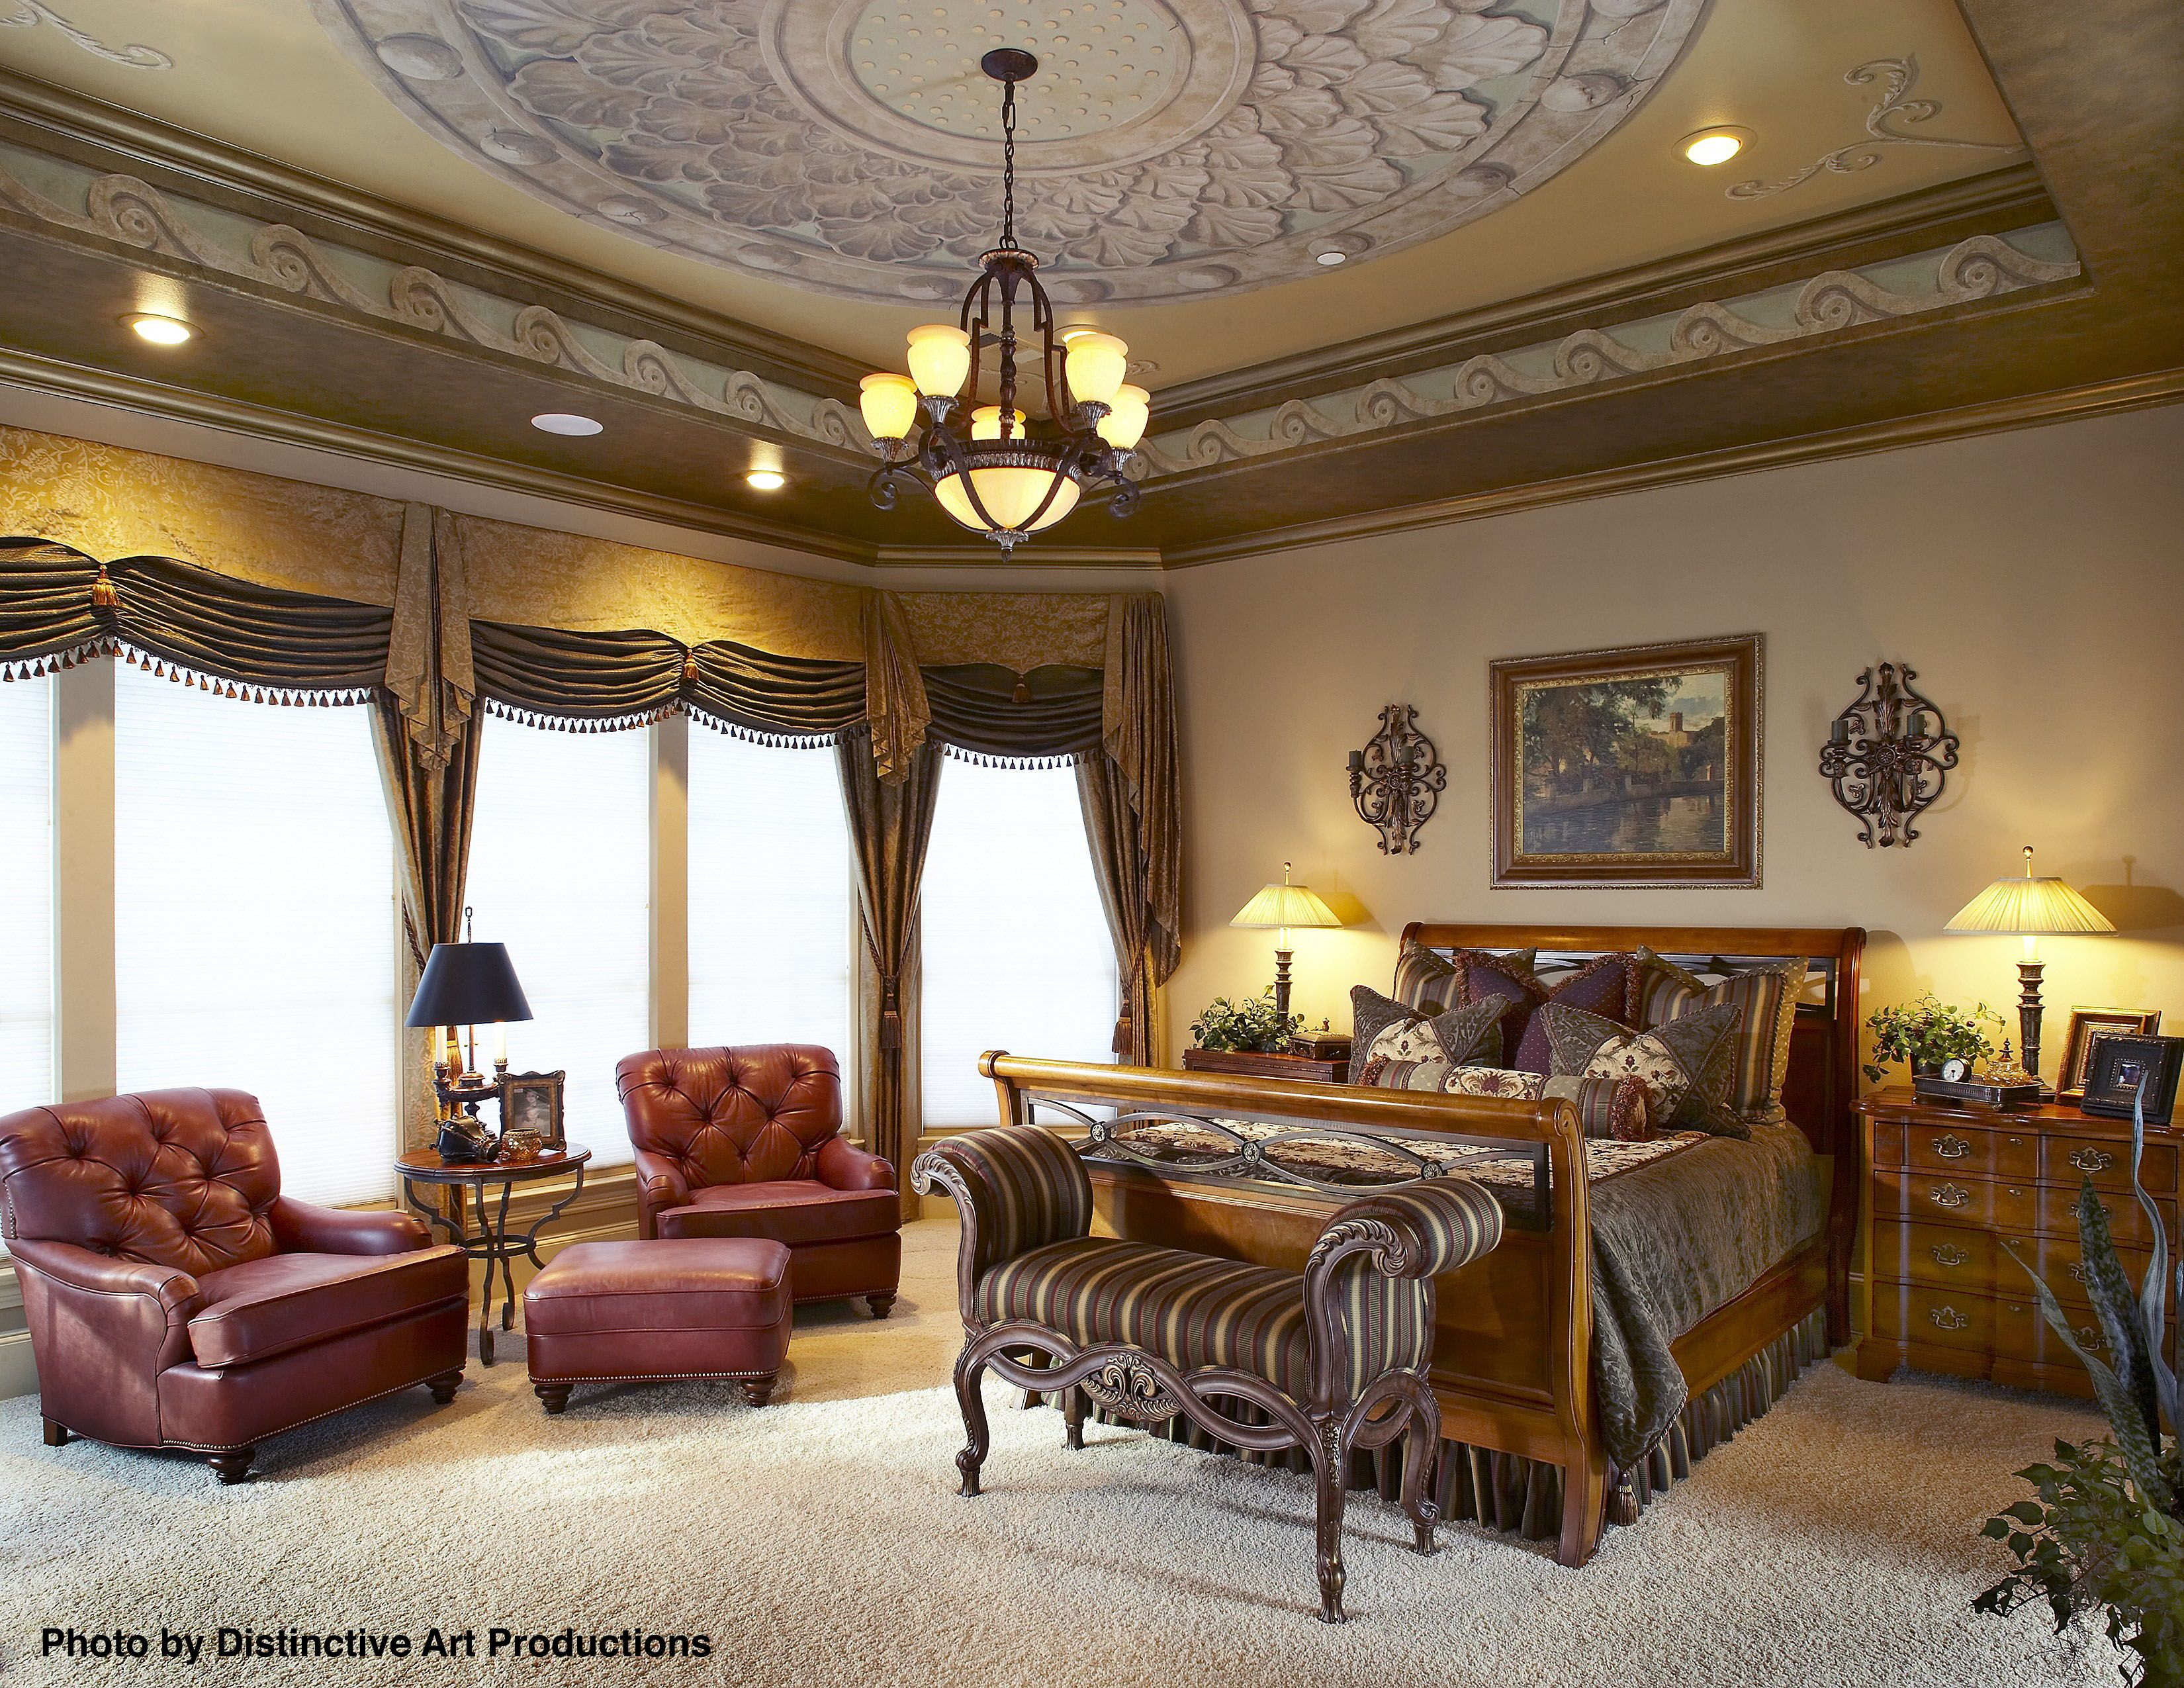 2020 How Much Does An Interior Designer Cost Interior Design Prices Master Bedroom Makeover Bedroom Makeover Interior Designer Cost